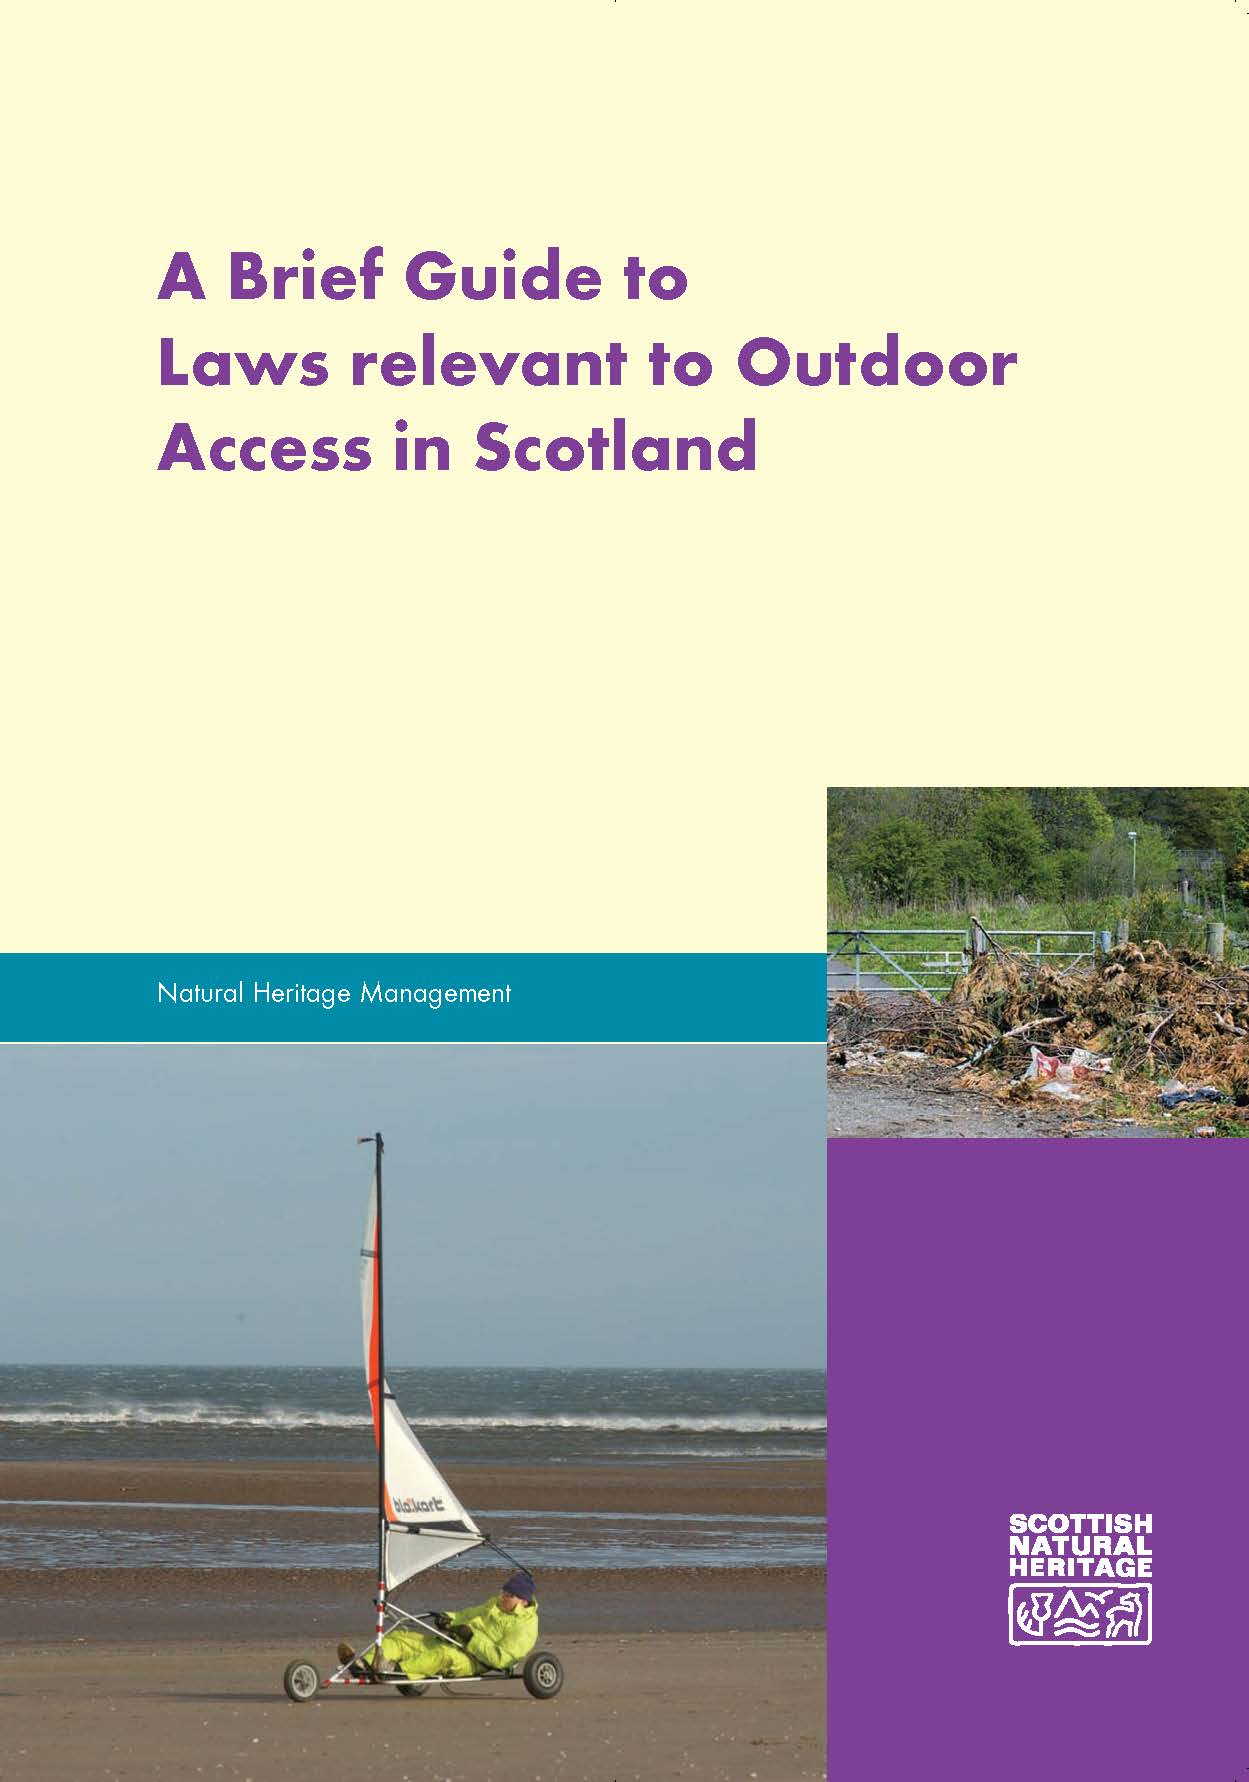 A Brief Guide to Laws relevant to Outdoor Access in Scotland - Front cover